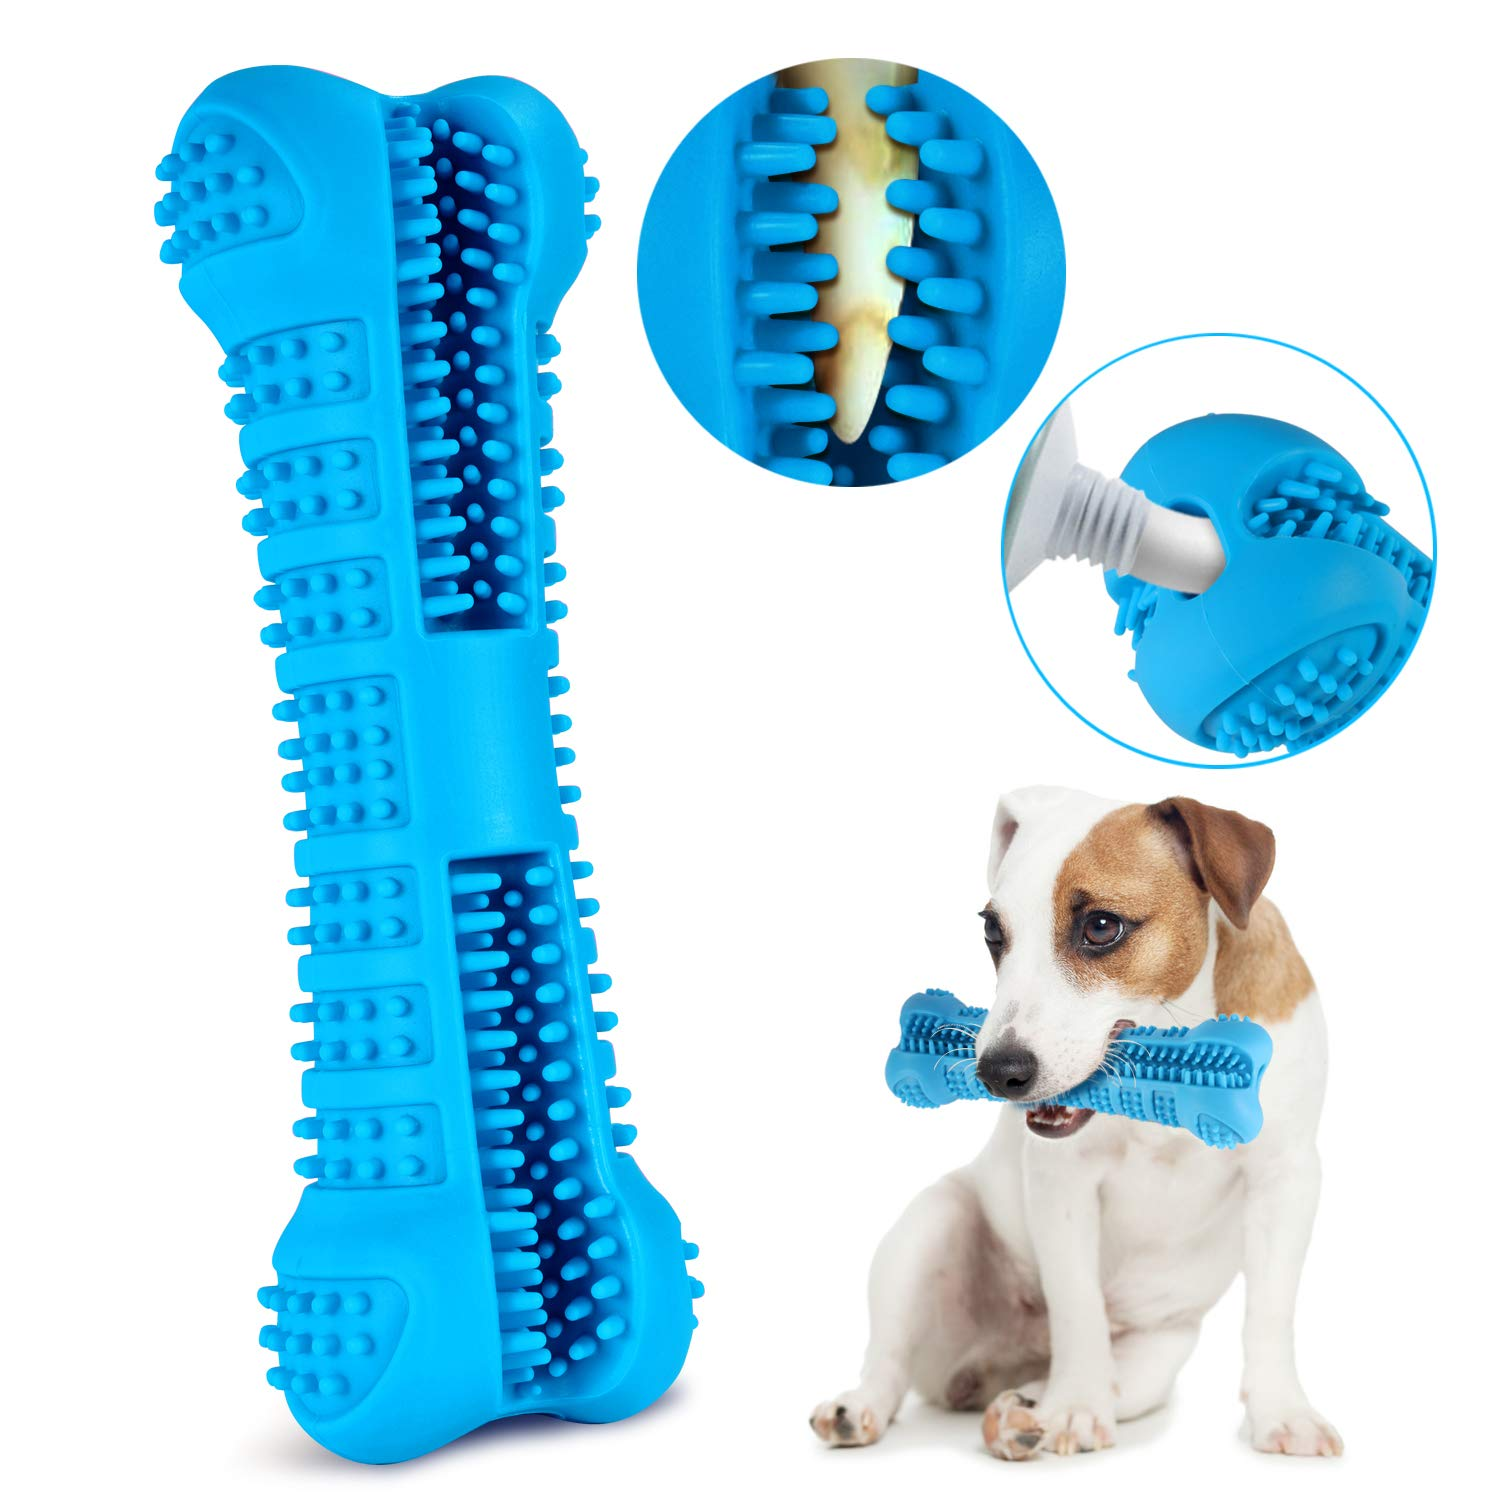 Pet Dog Toothbrush Stick Pet Chew Toy Dog Teeth Brush Cleaning Massage Non-Toxic Natural Rubber Dental Care Stickers